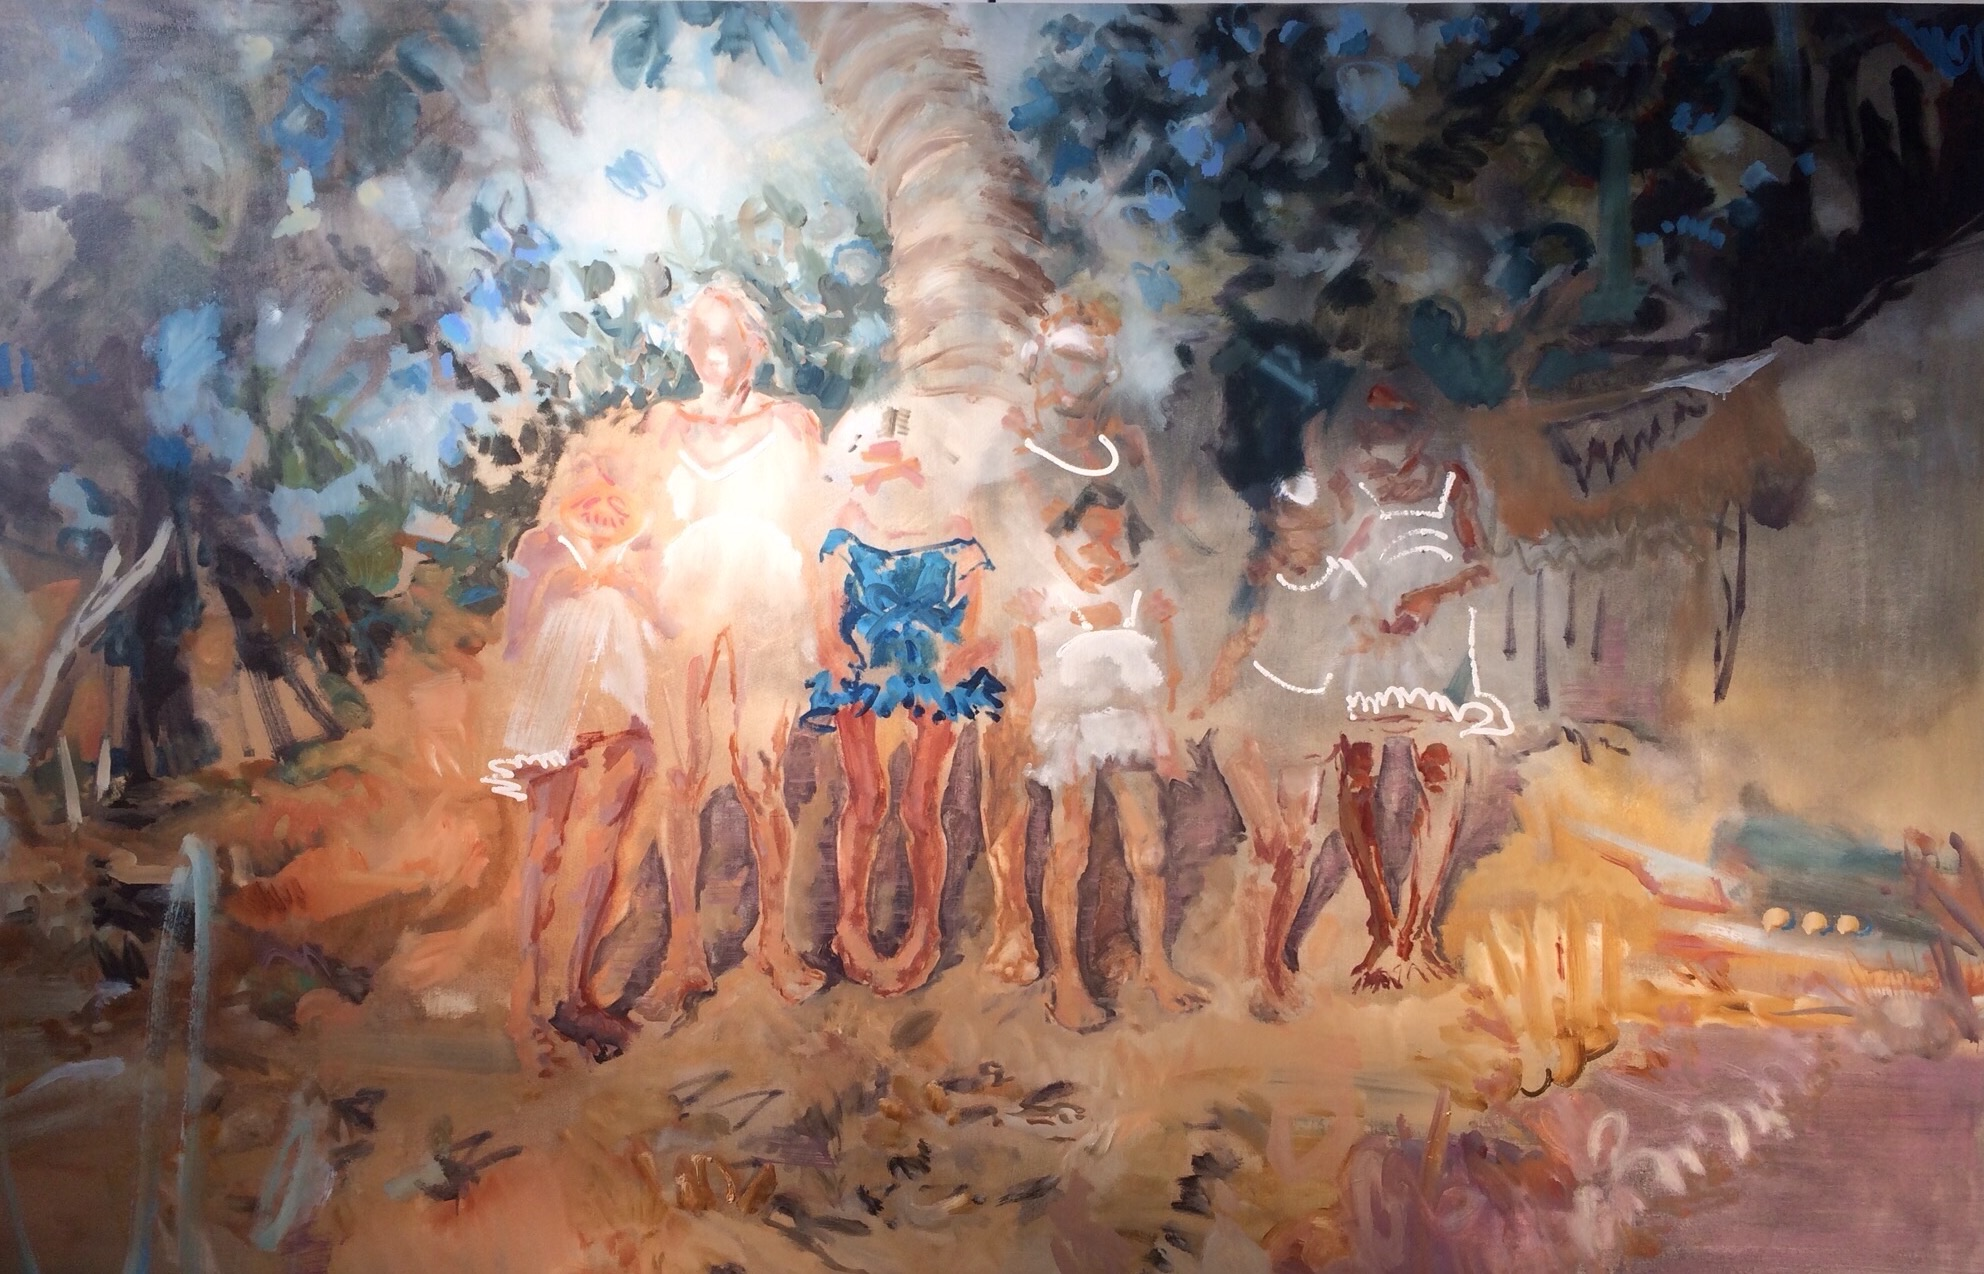 Sunday Mass in Puerto, 2017, Oil on Canvas, 62 X 96 inches